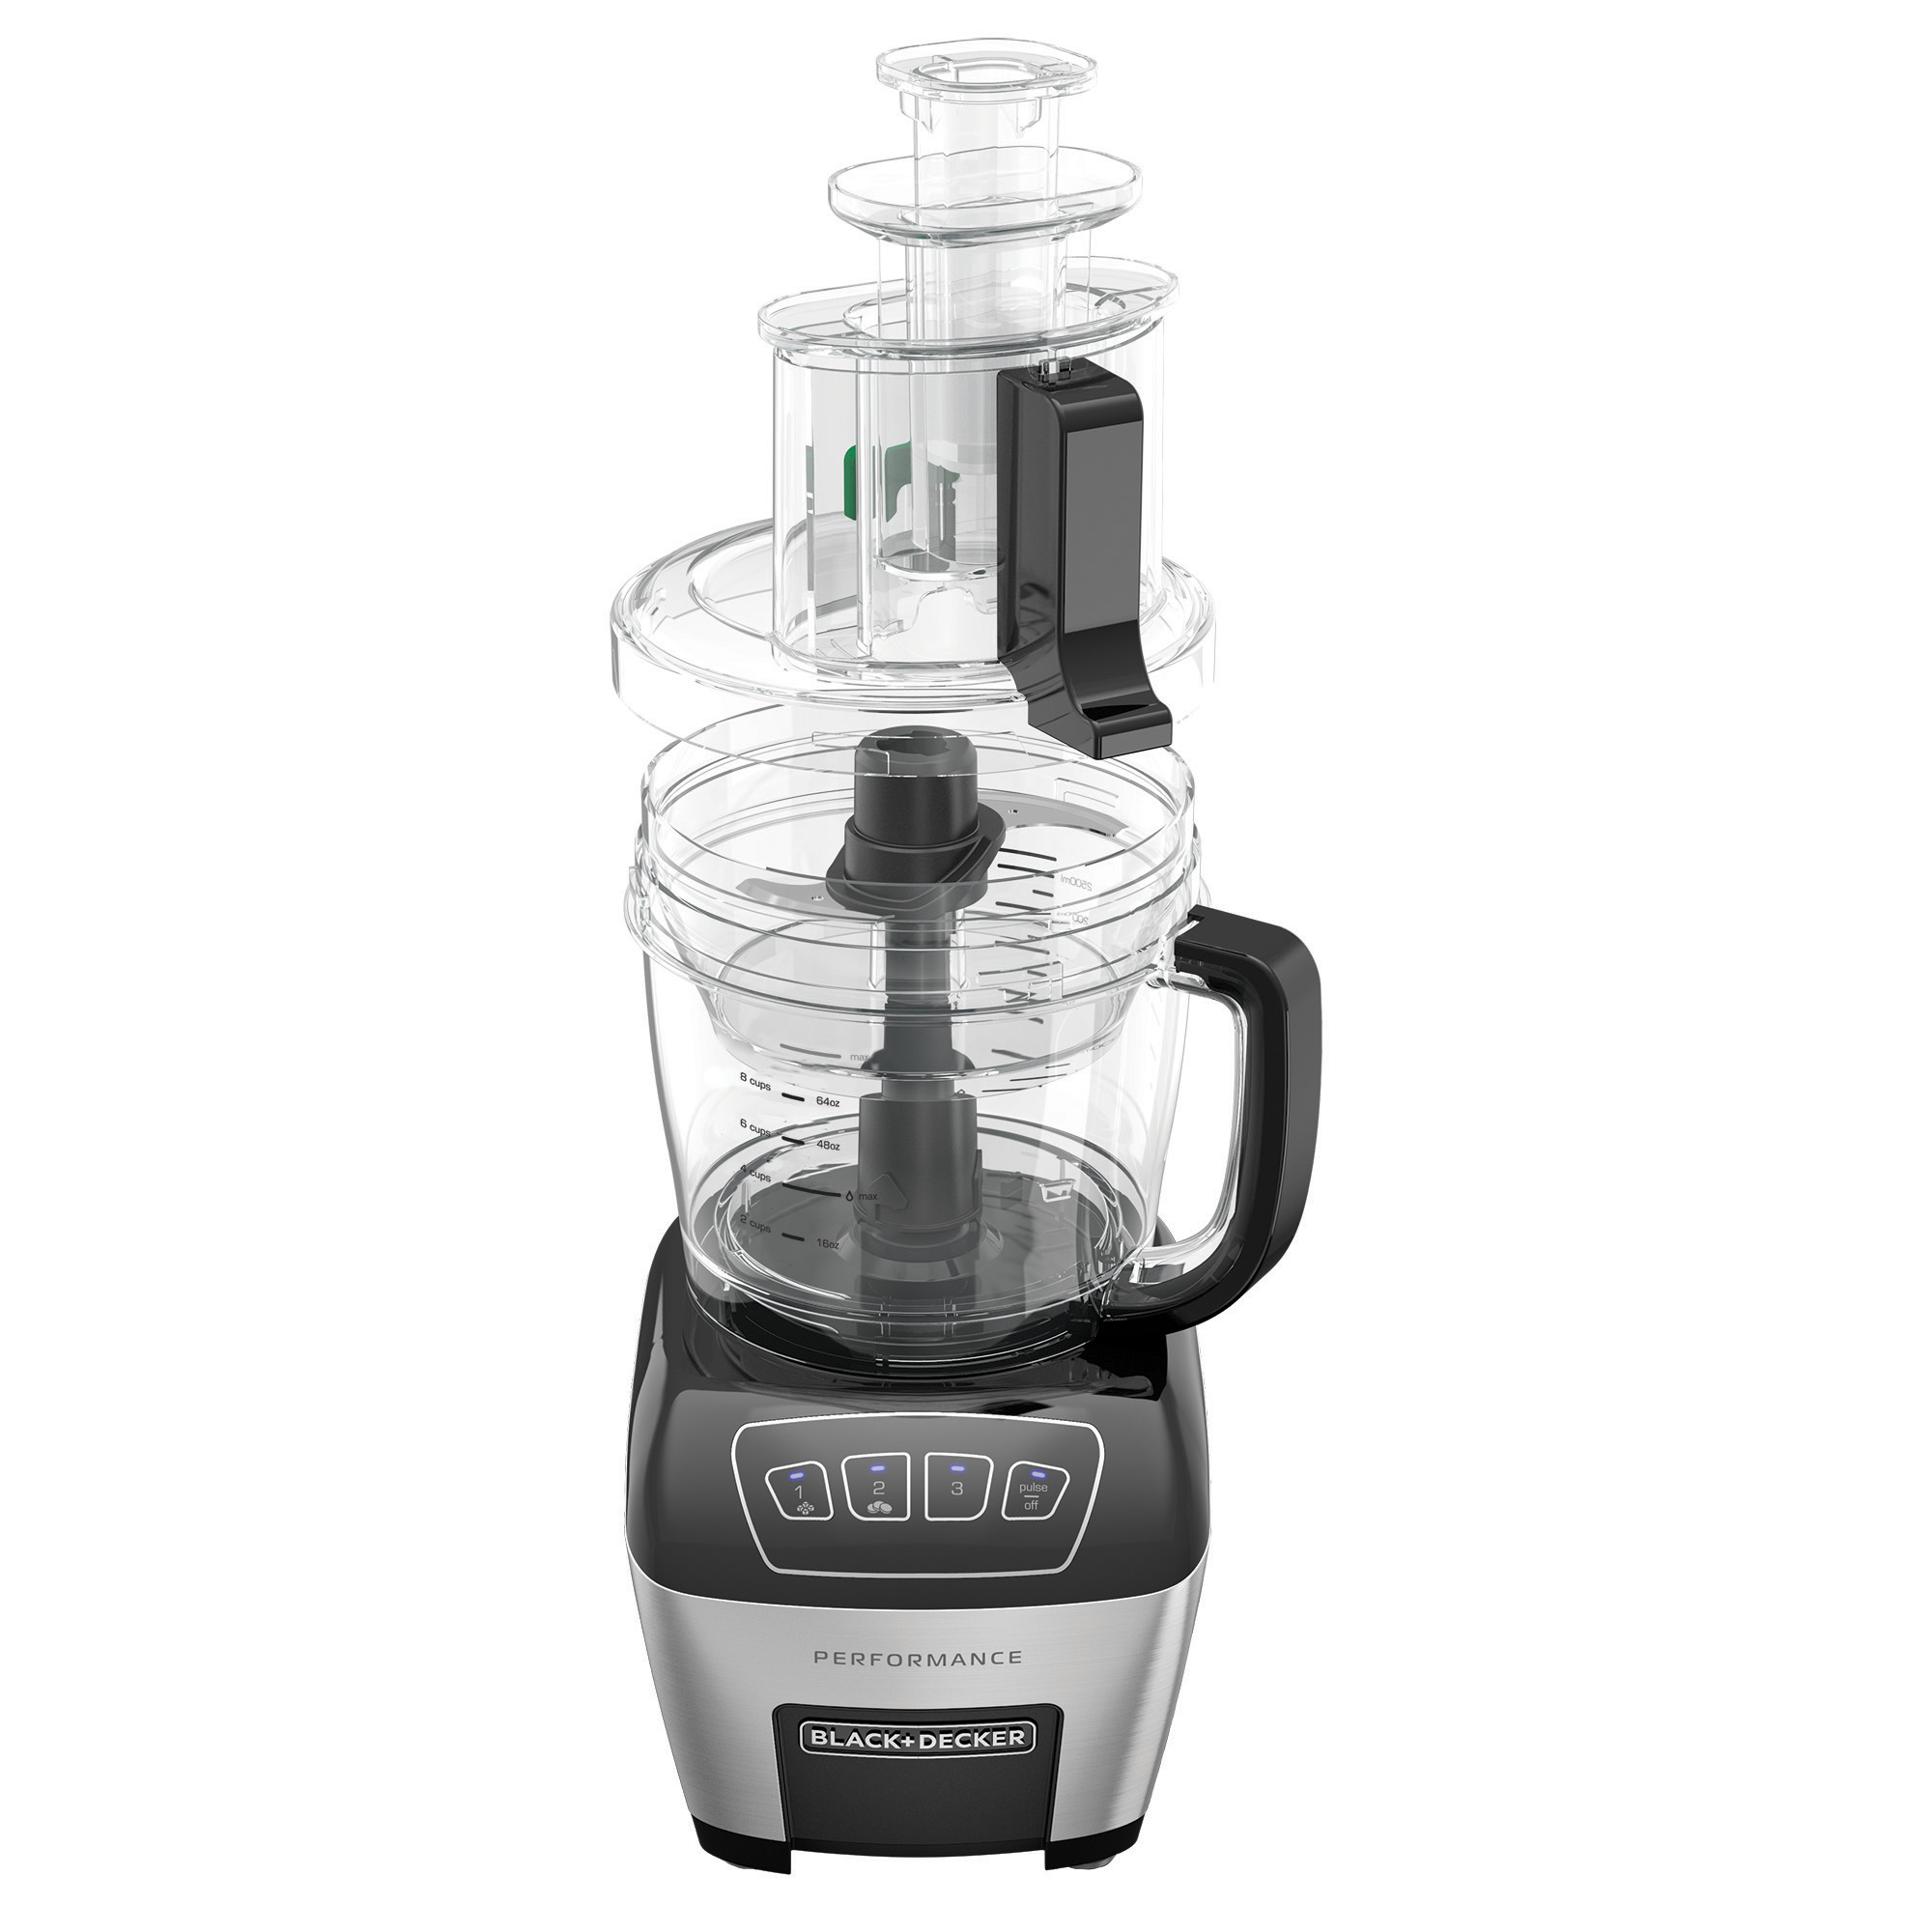 Black And Decker Performance Dicing Food Processor Digital